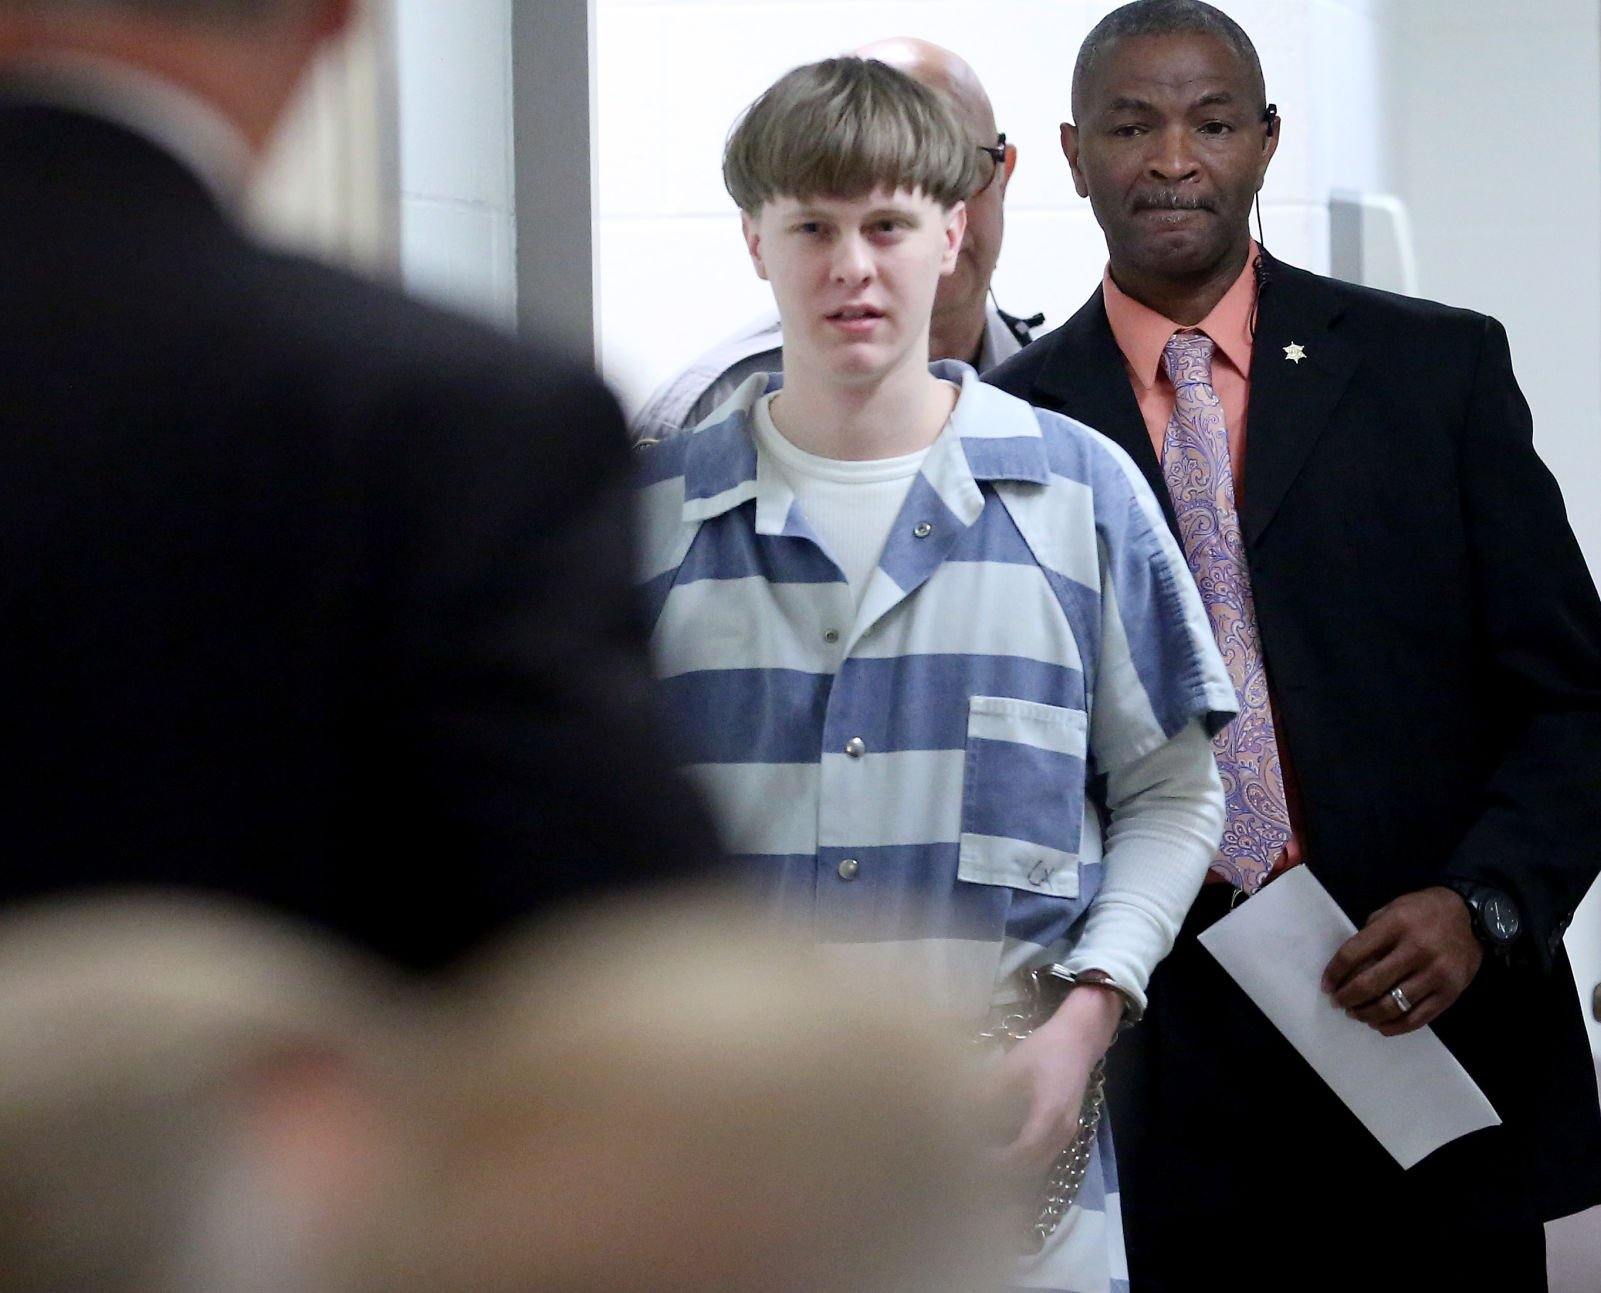 Convicted Charleston church killer wants to fire Jewish, Indian lawyers